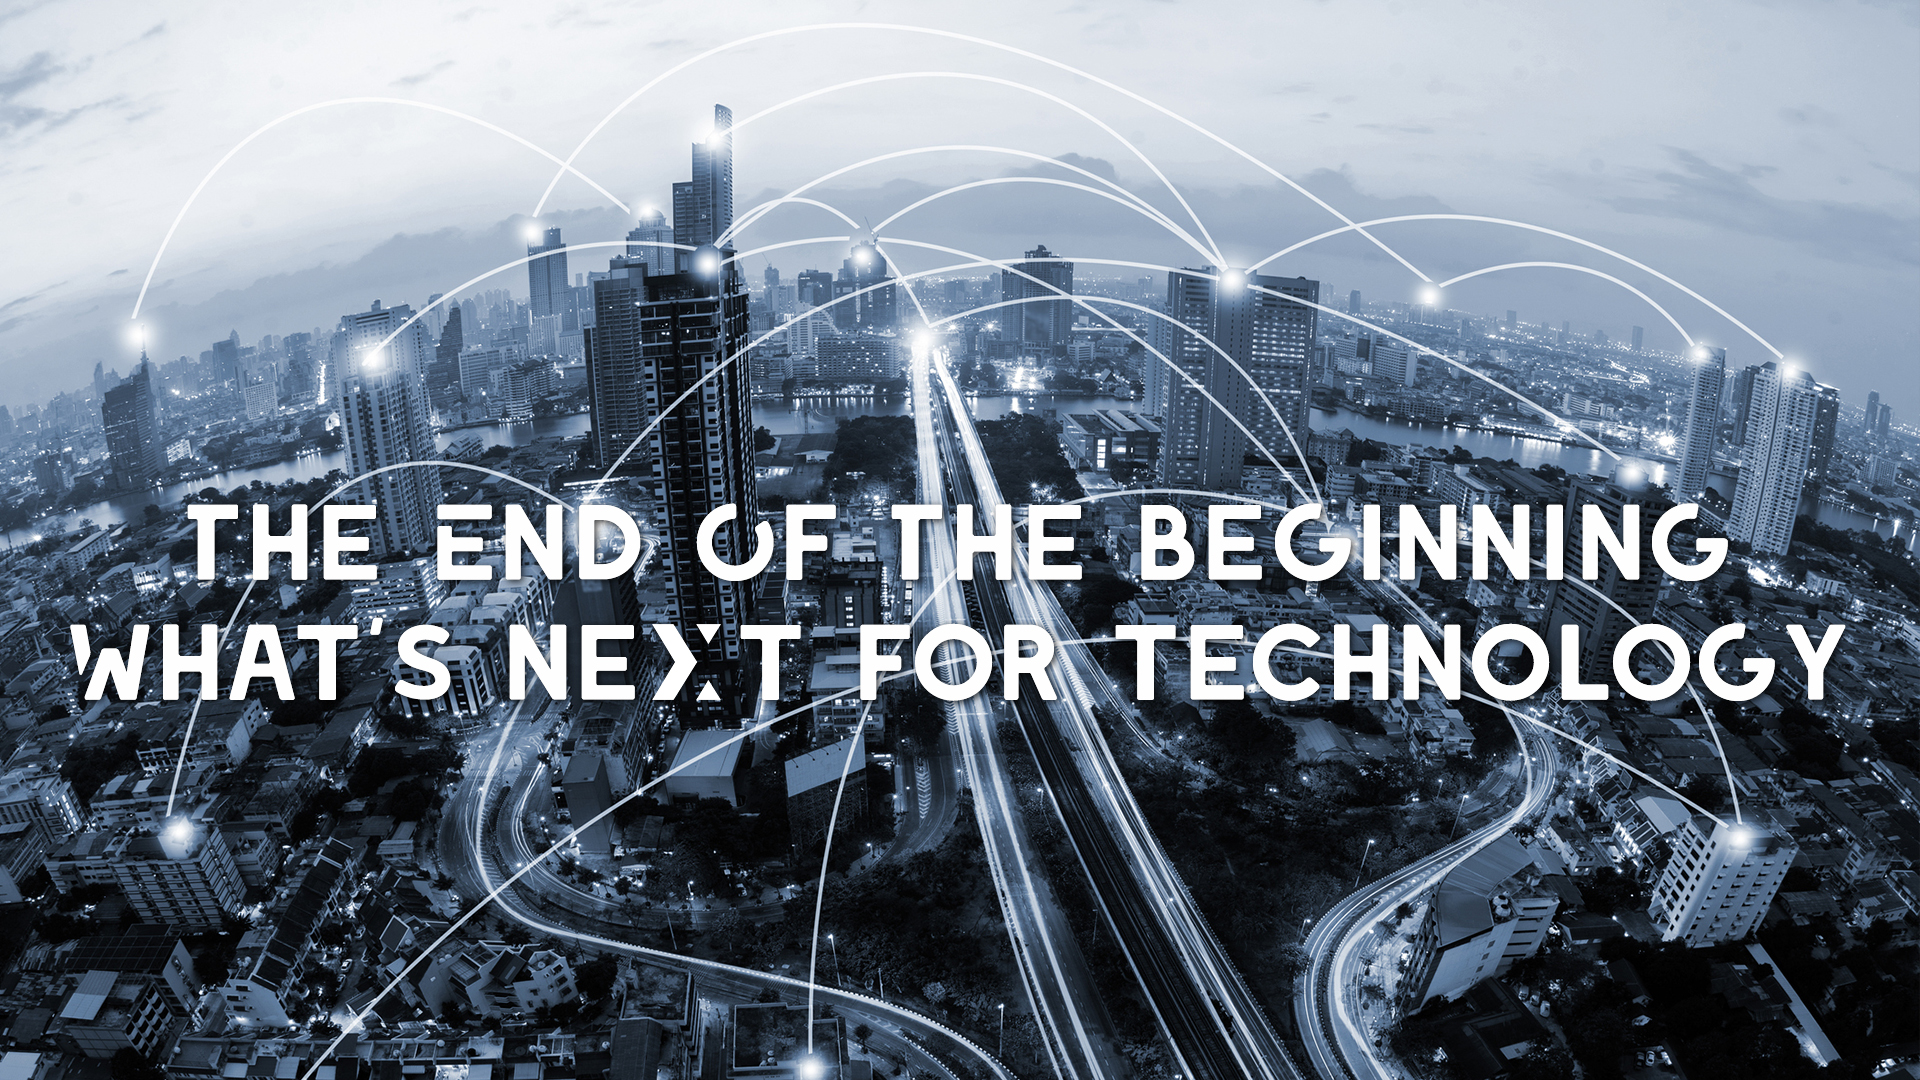 Explore the Technology of the Future in 'The End of the